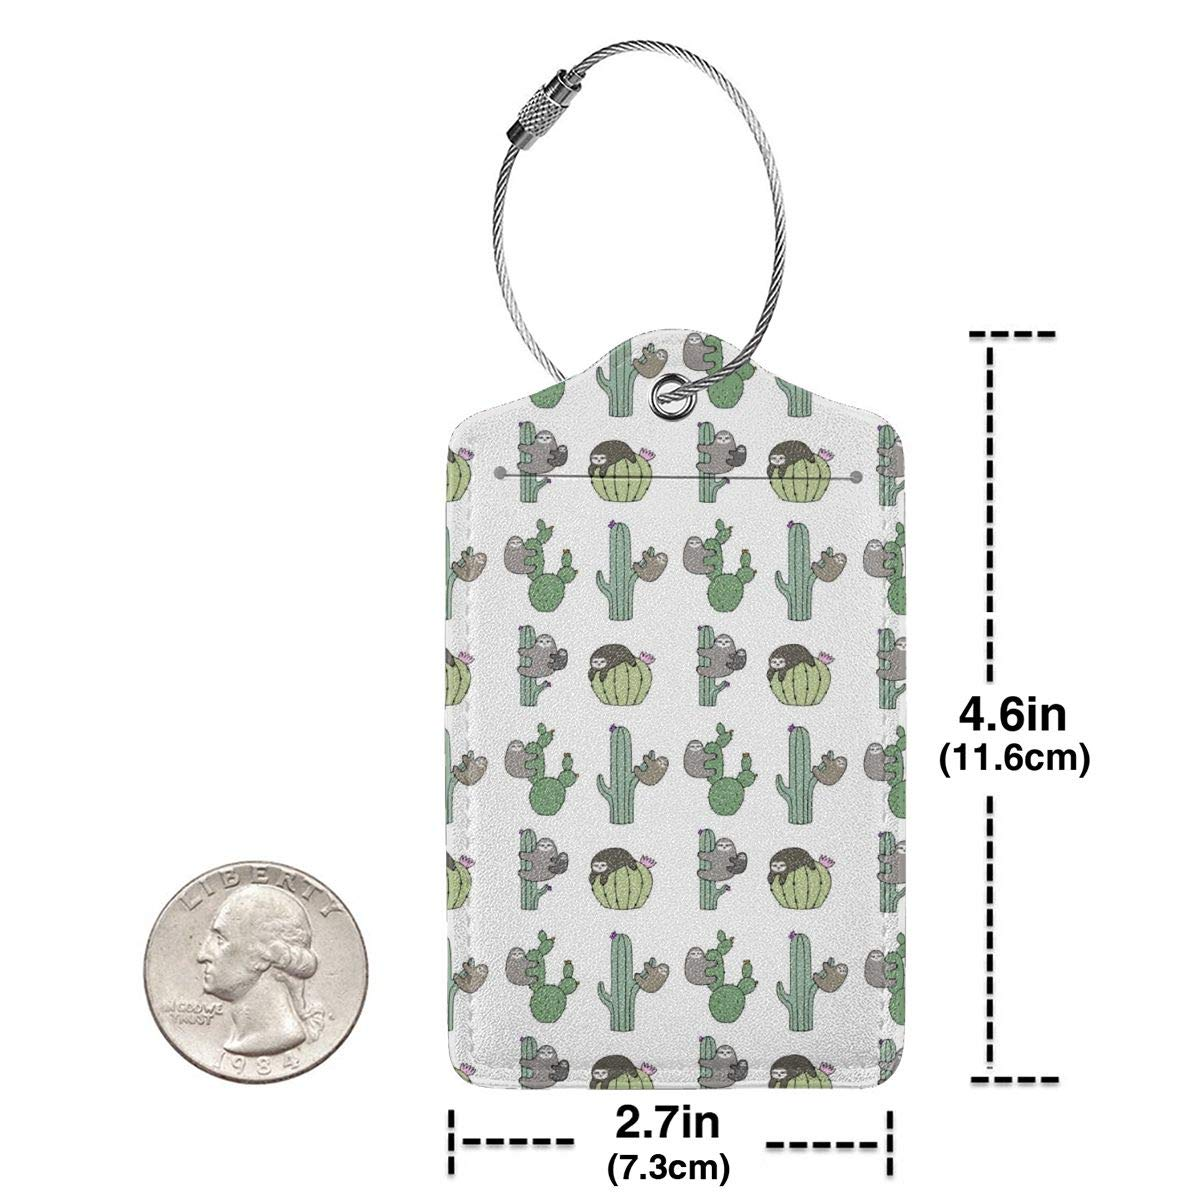 Funny Cactus Sloth Luggage Tag Label Travel Bag Label With Privacy Cover Luggage Tag Leather Personalized Suitcase Tag Travel Accessories